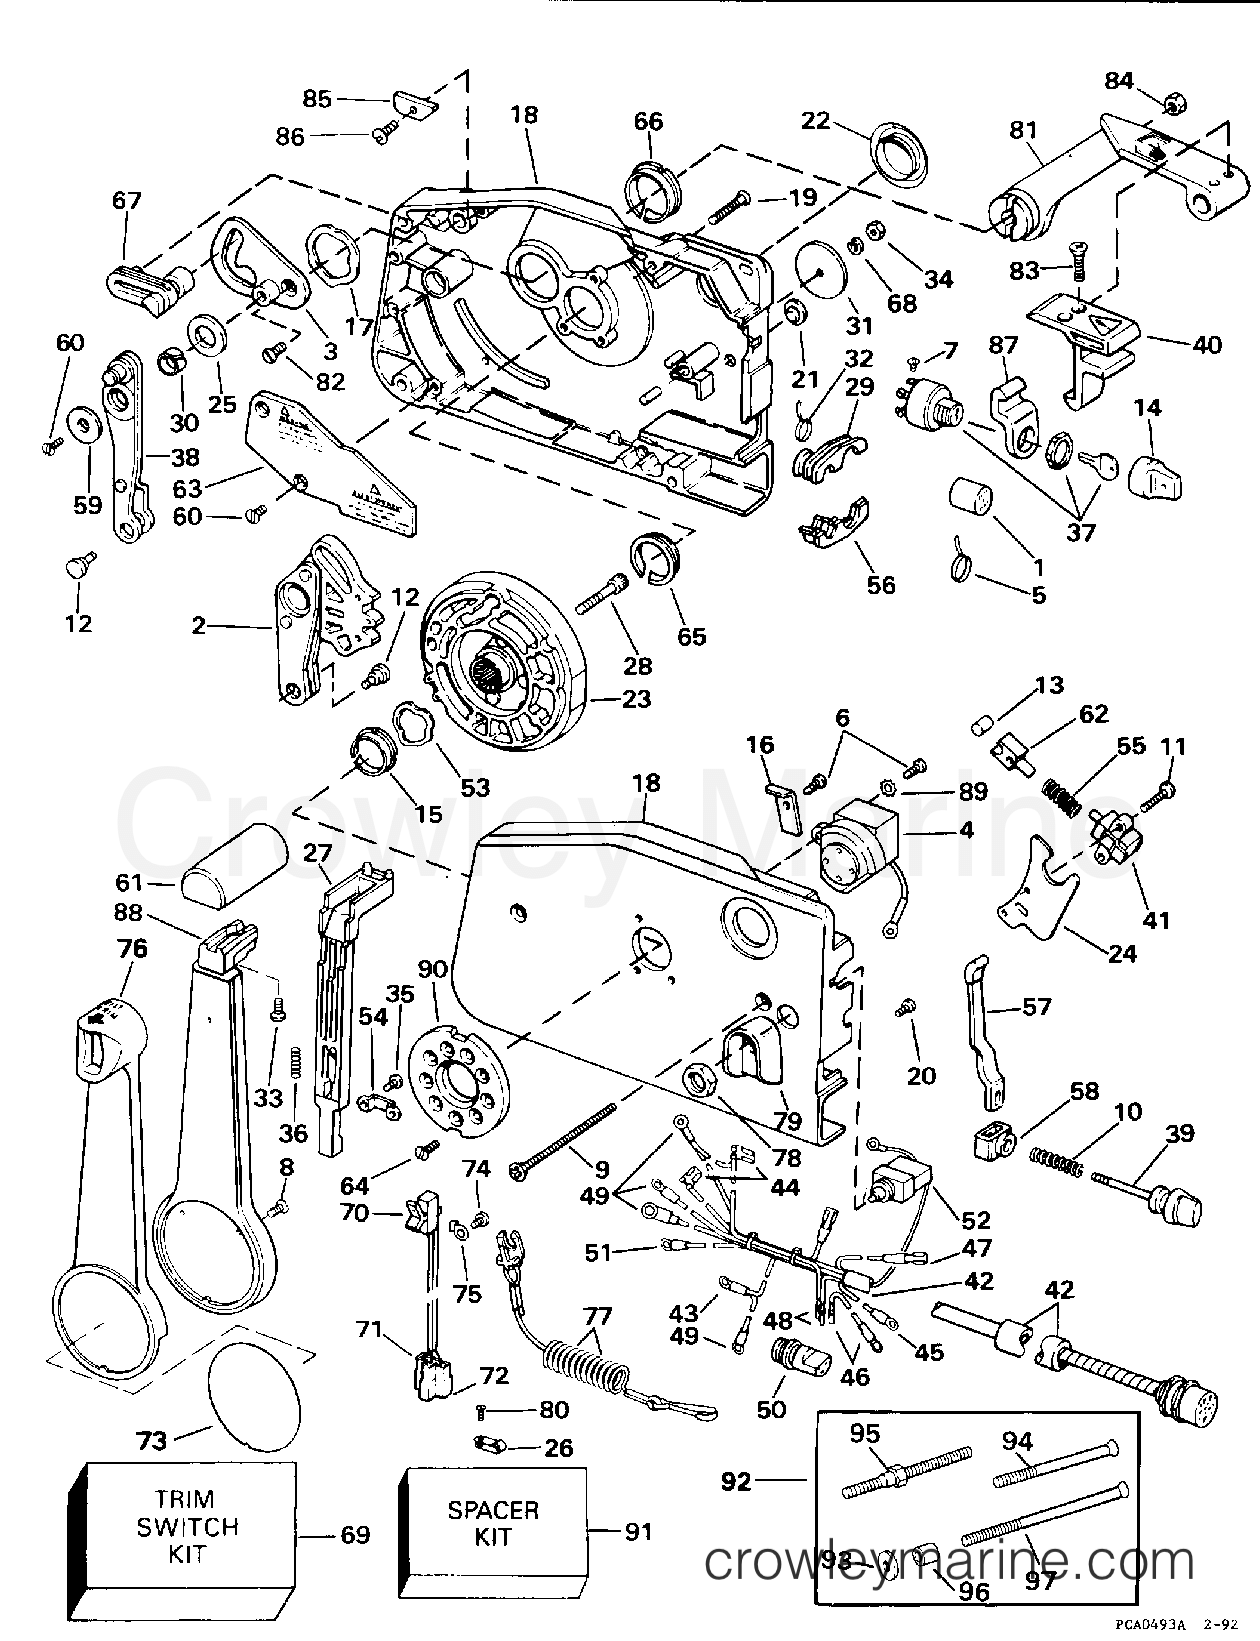 Omc Key Switch Wiring Diagram Simple Guide About Ignition Remote Control Parts 32 Evinrude